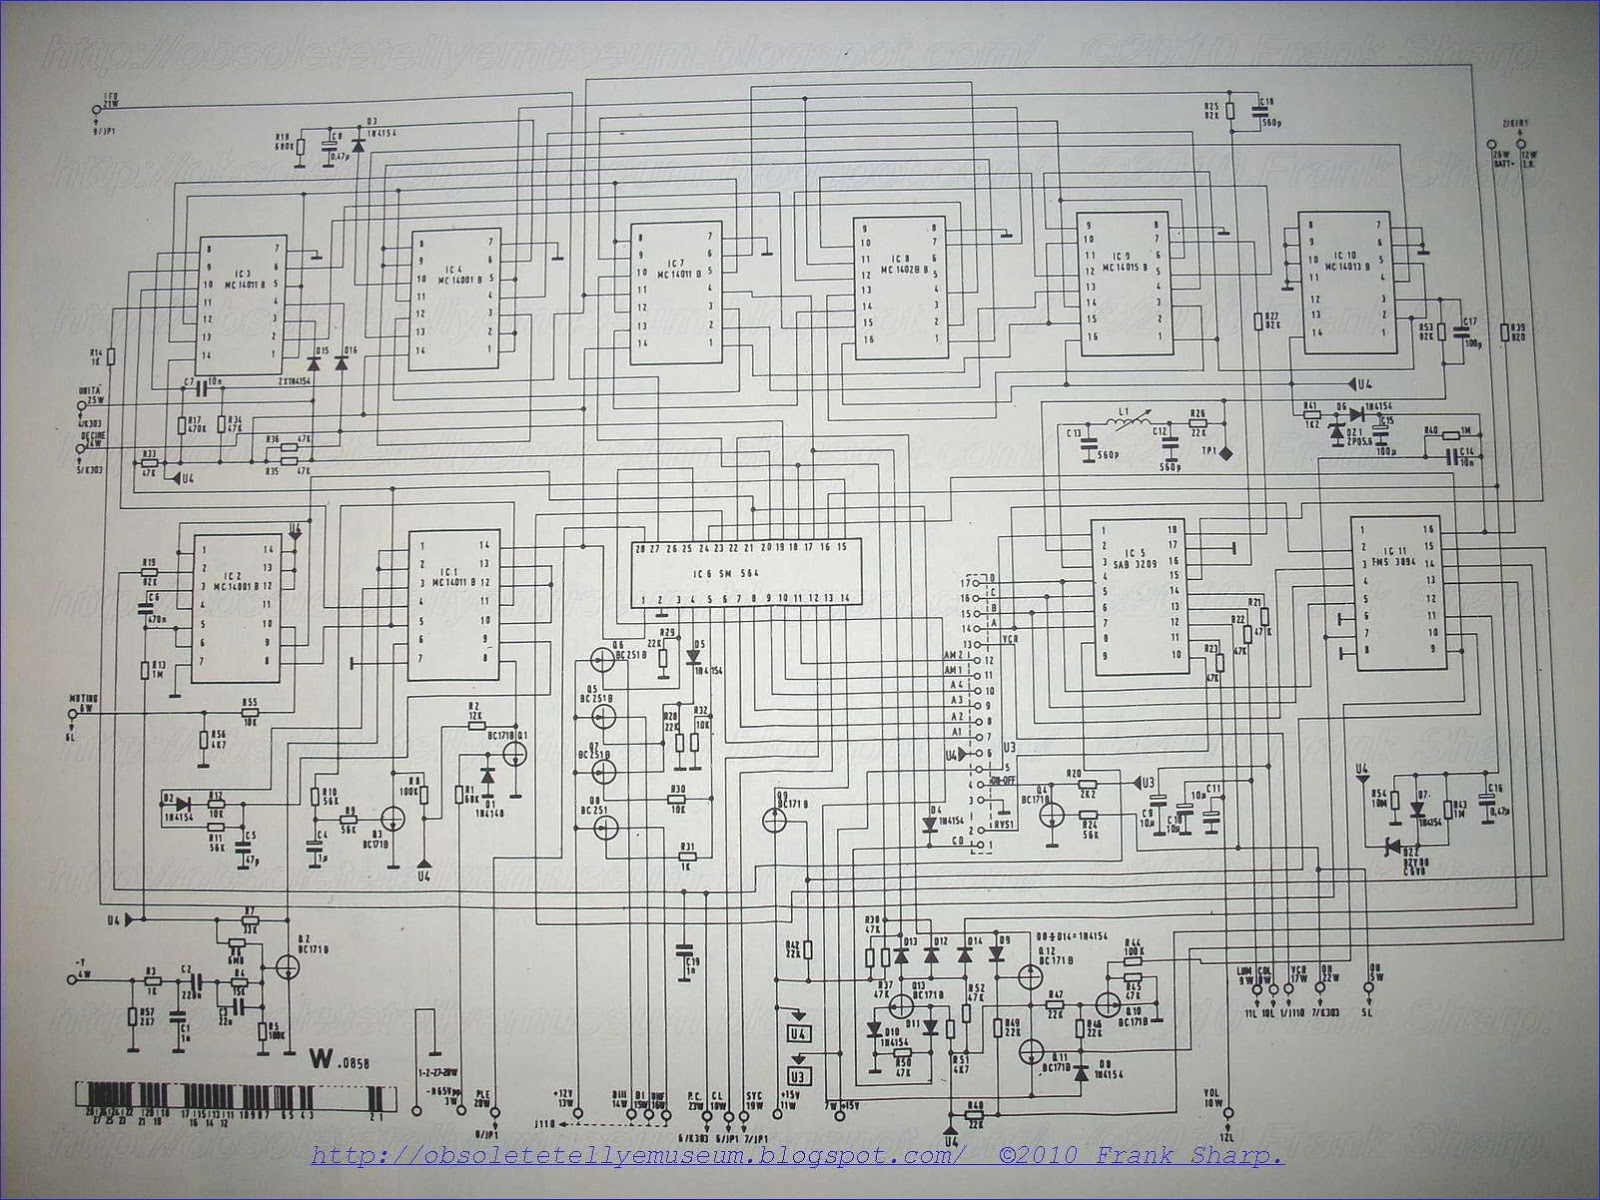 Obsolete Technology Tellye Autovox Tvc2609 Spazio 99tc Chassis Hartley Oscillator Basic Schematic Circuit Diagram Pulse 14 Is Used Initially To Reset The Divider 4b Of Reference Frequency Source 4 Which Does Not Generate Signal Pulses As Long